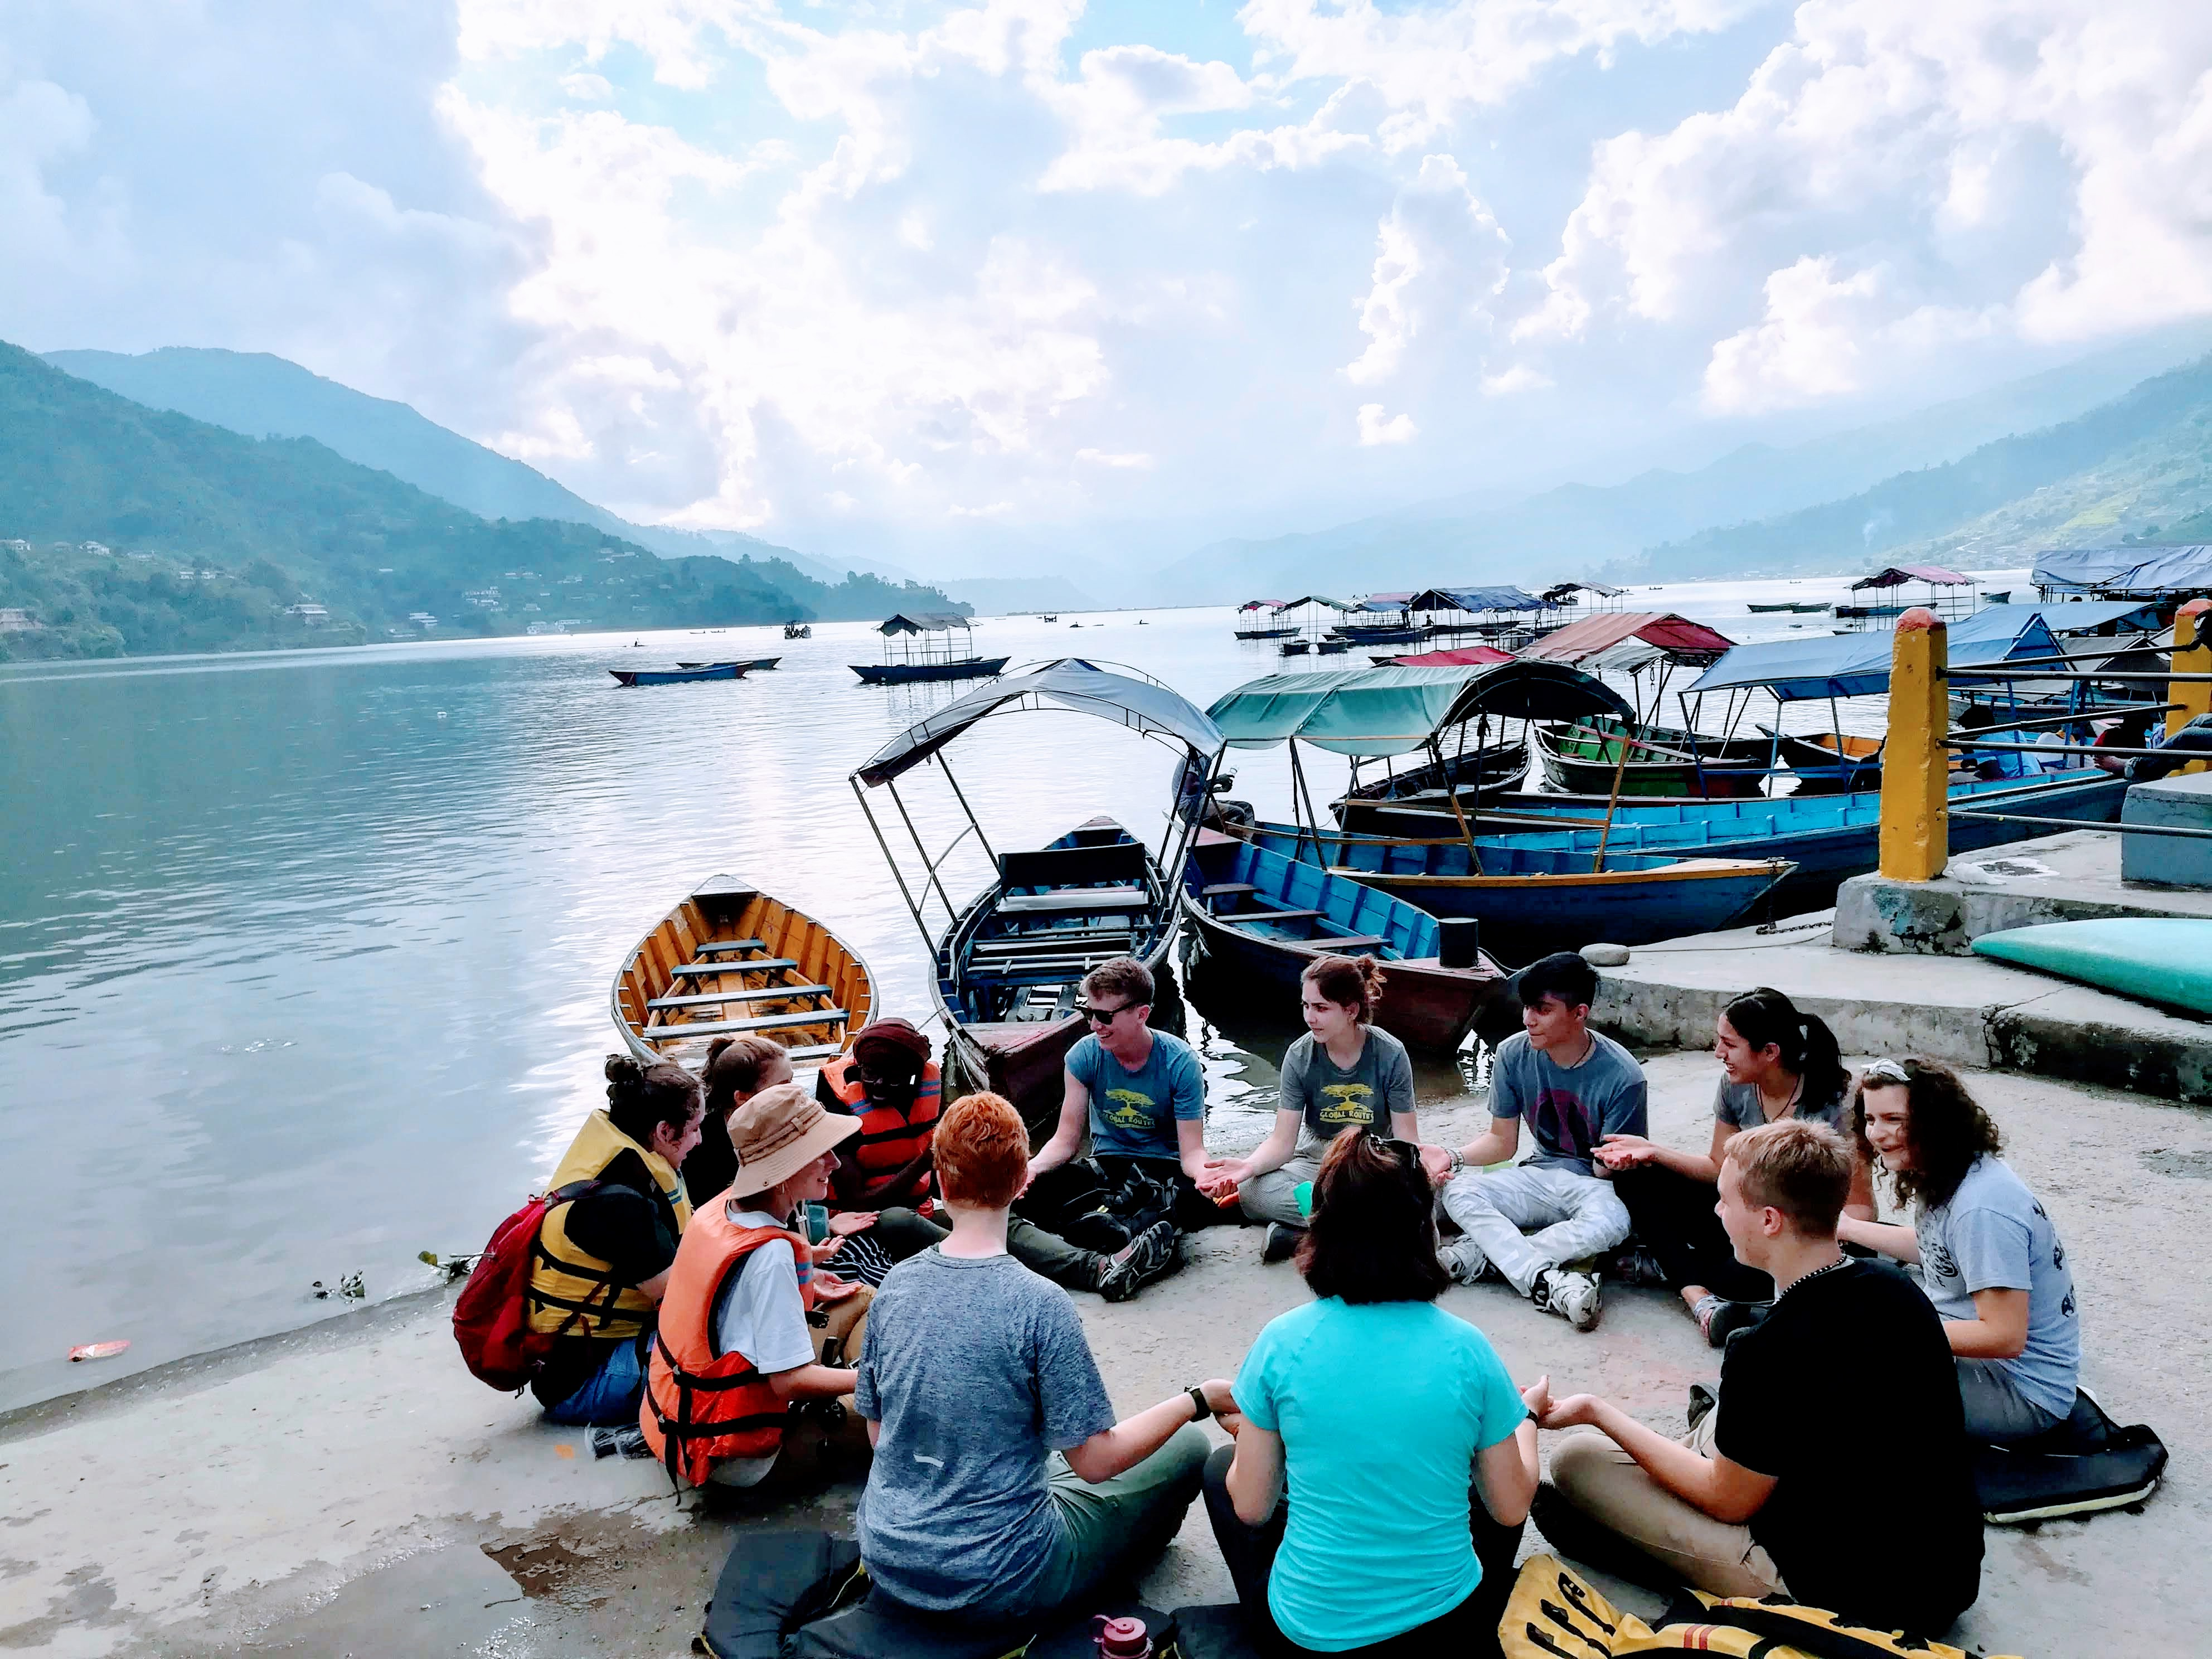 Summer Program - Community Resources | Global Routes Nepal: Trekking and Service